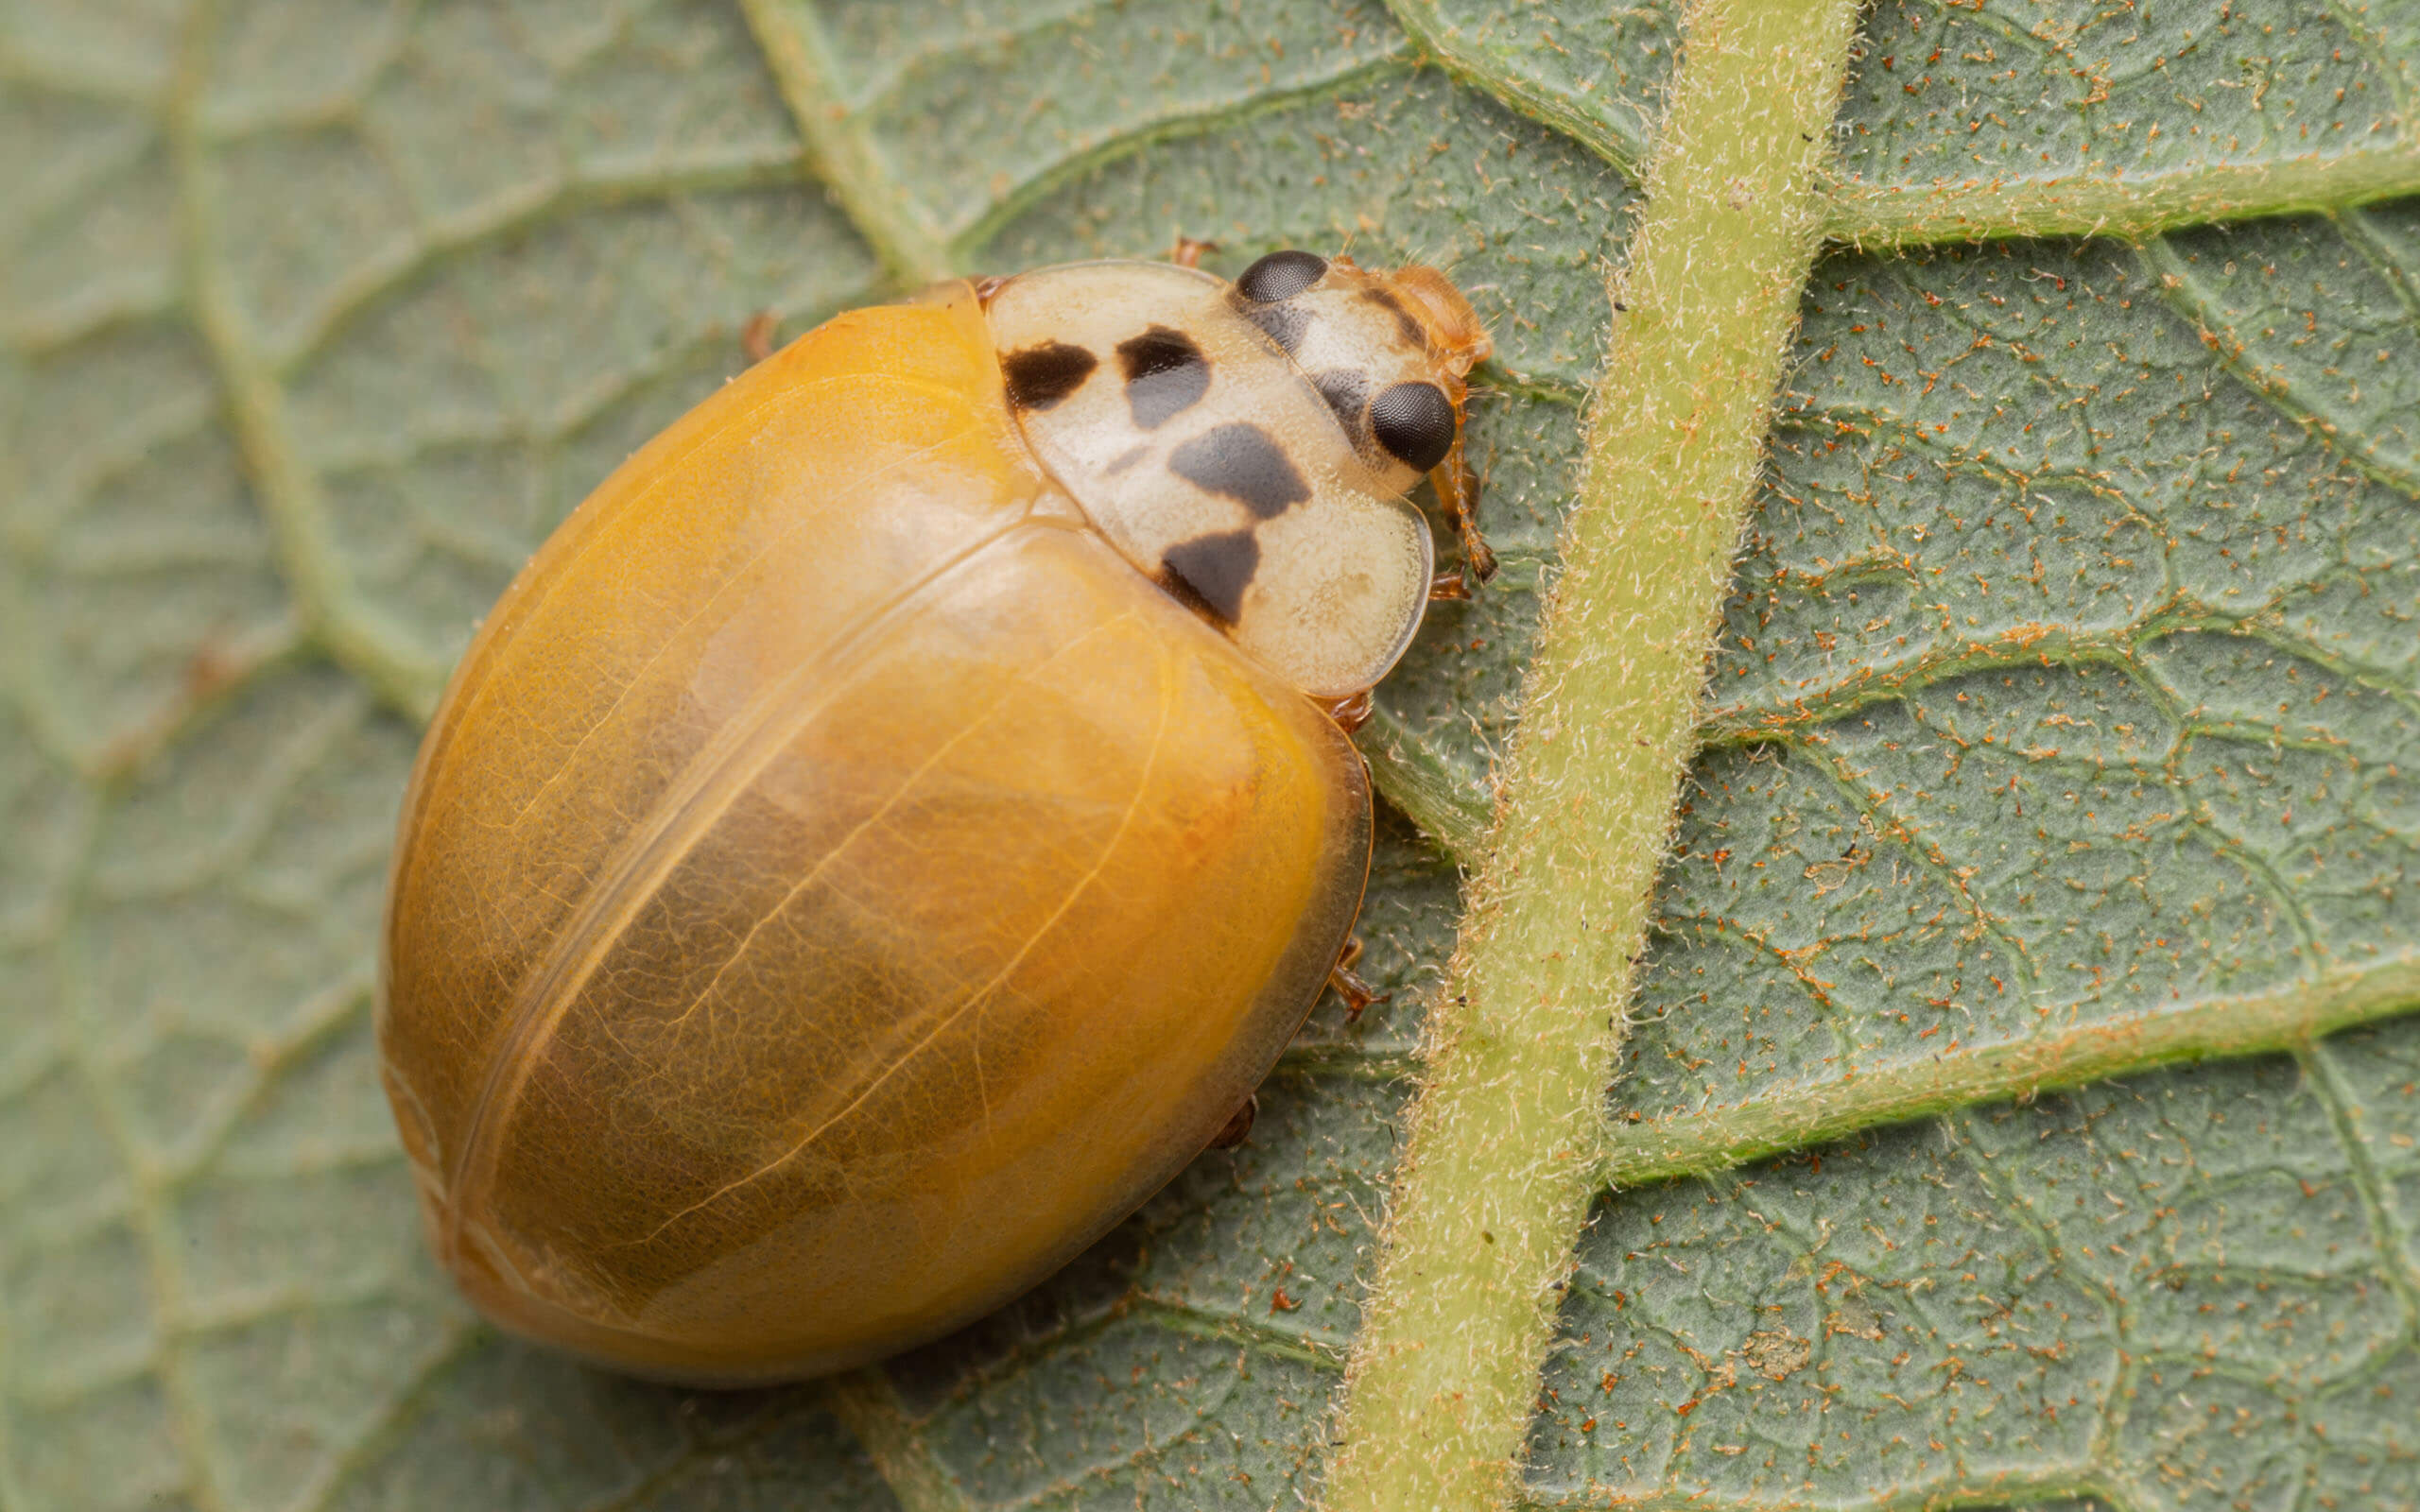 A picture of a yellow beetle on a leaf